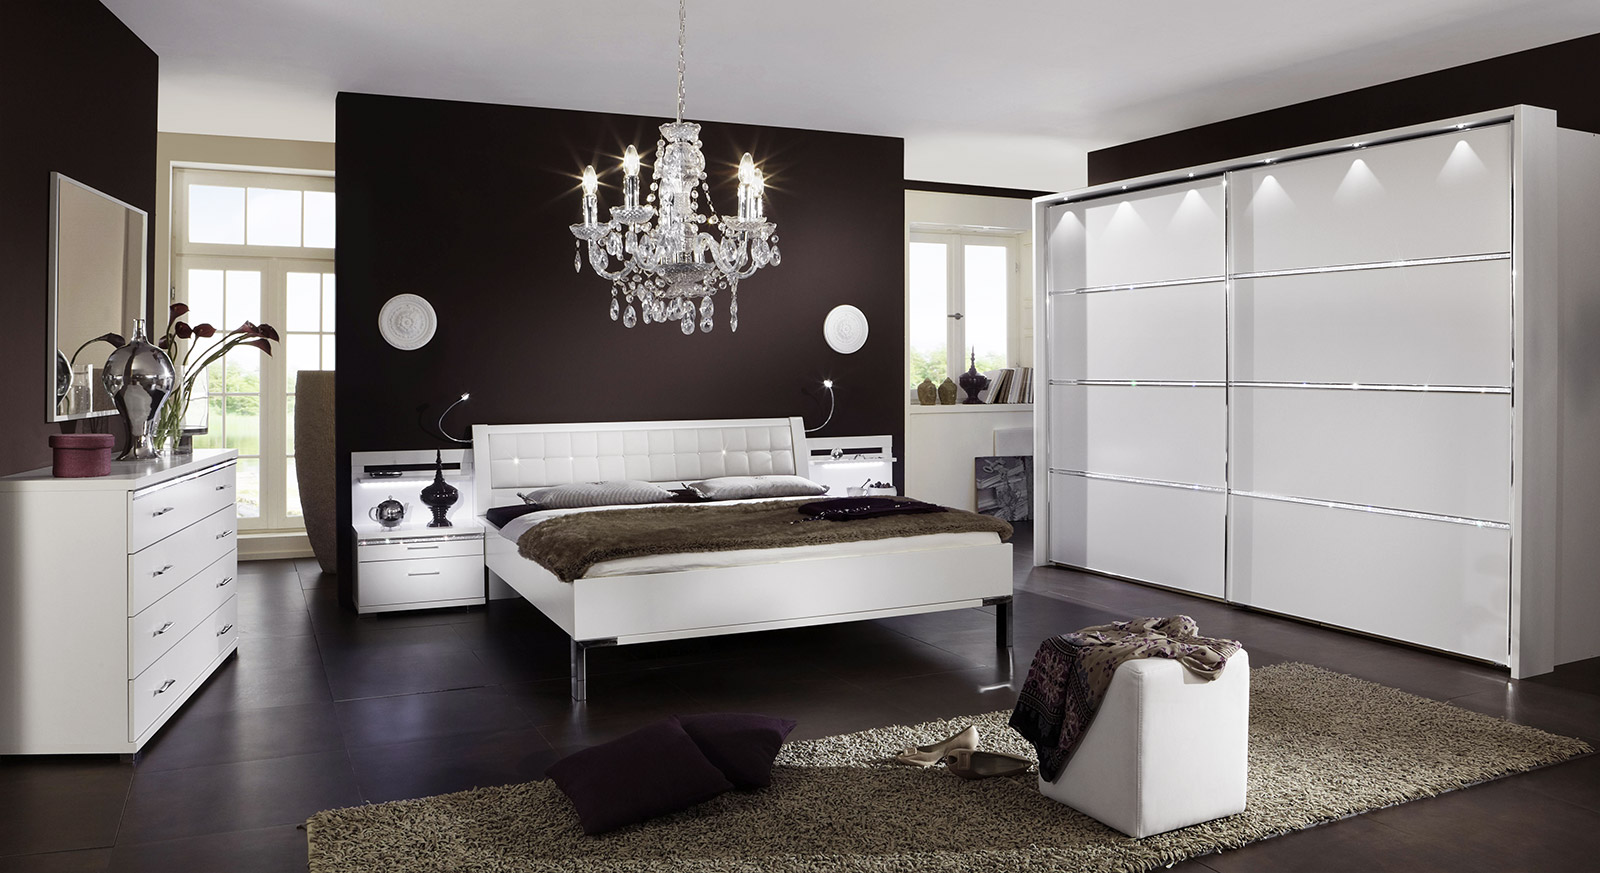 gunstige schlafzimmer komplett weis innenr ume und m bel. Black Bedroom Furniture Sets. Home Design Ideas